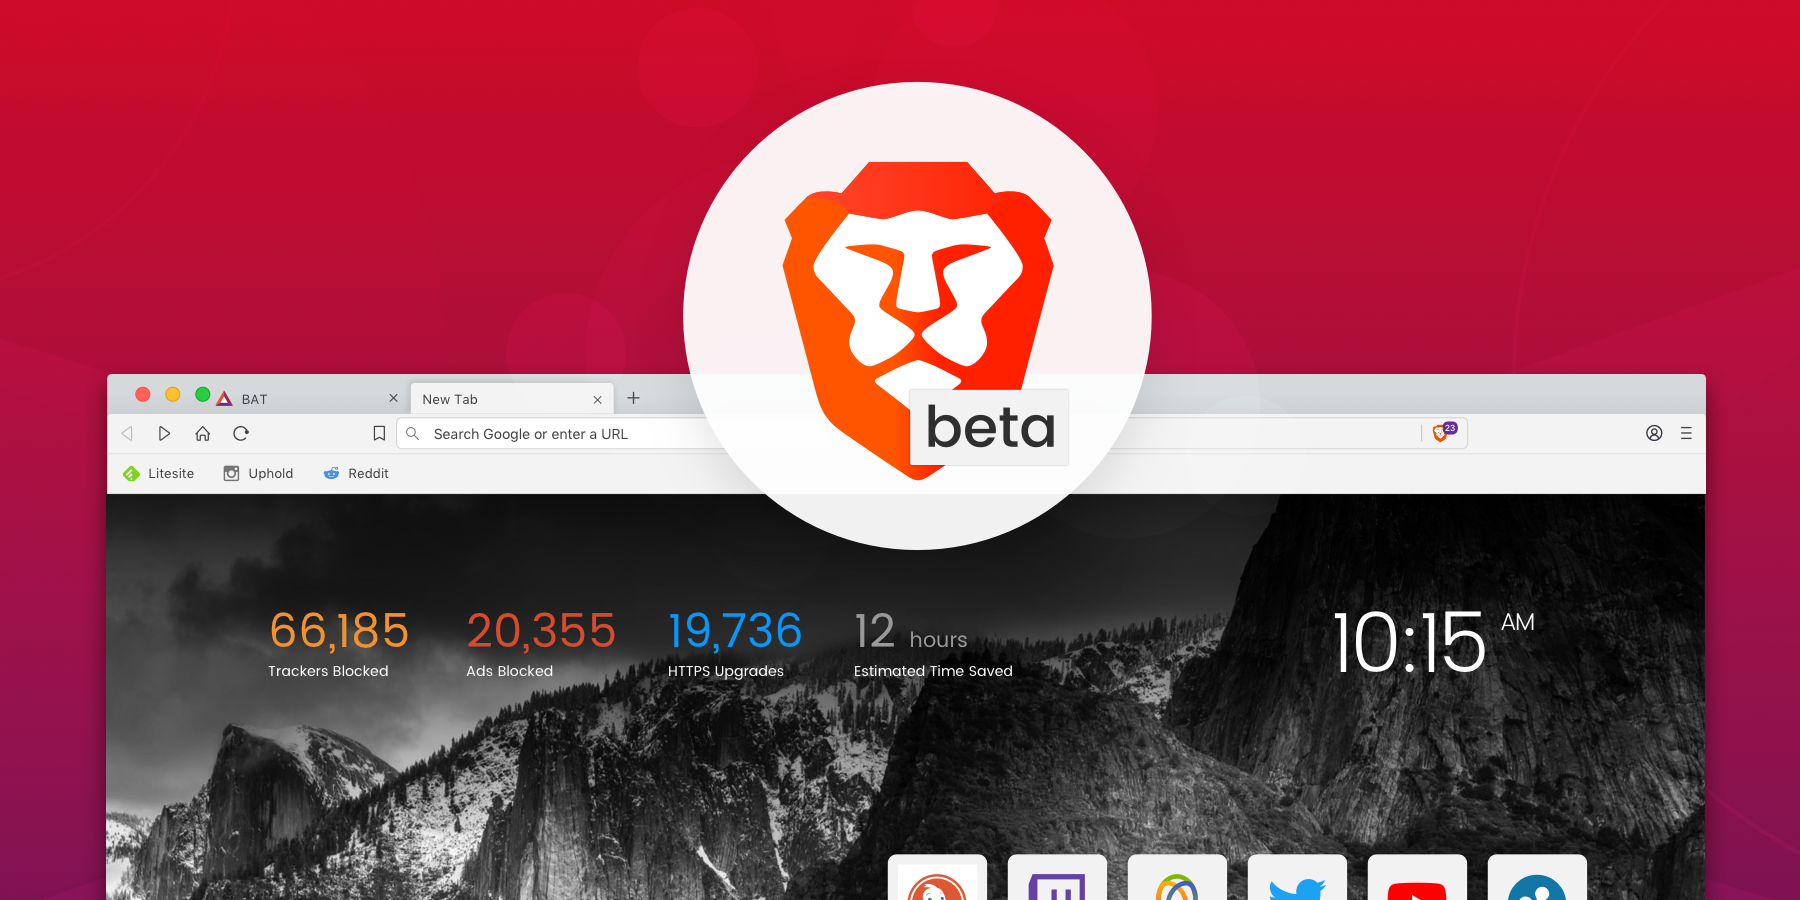 Brave Browser beta new tab page, showing 20,000+ ads have been blocked and 12 hours have been saved